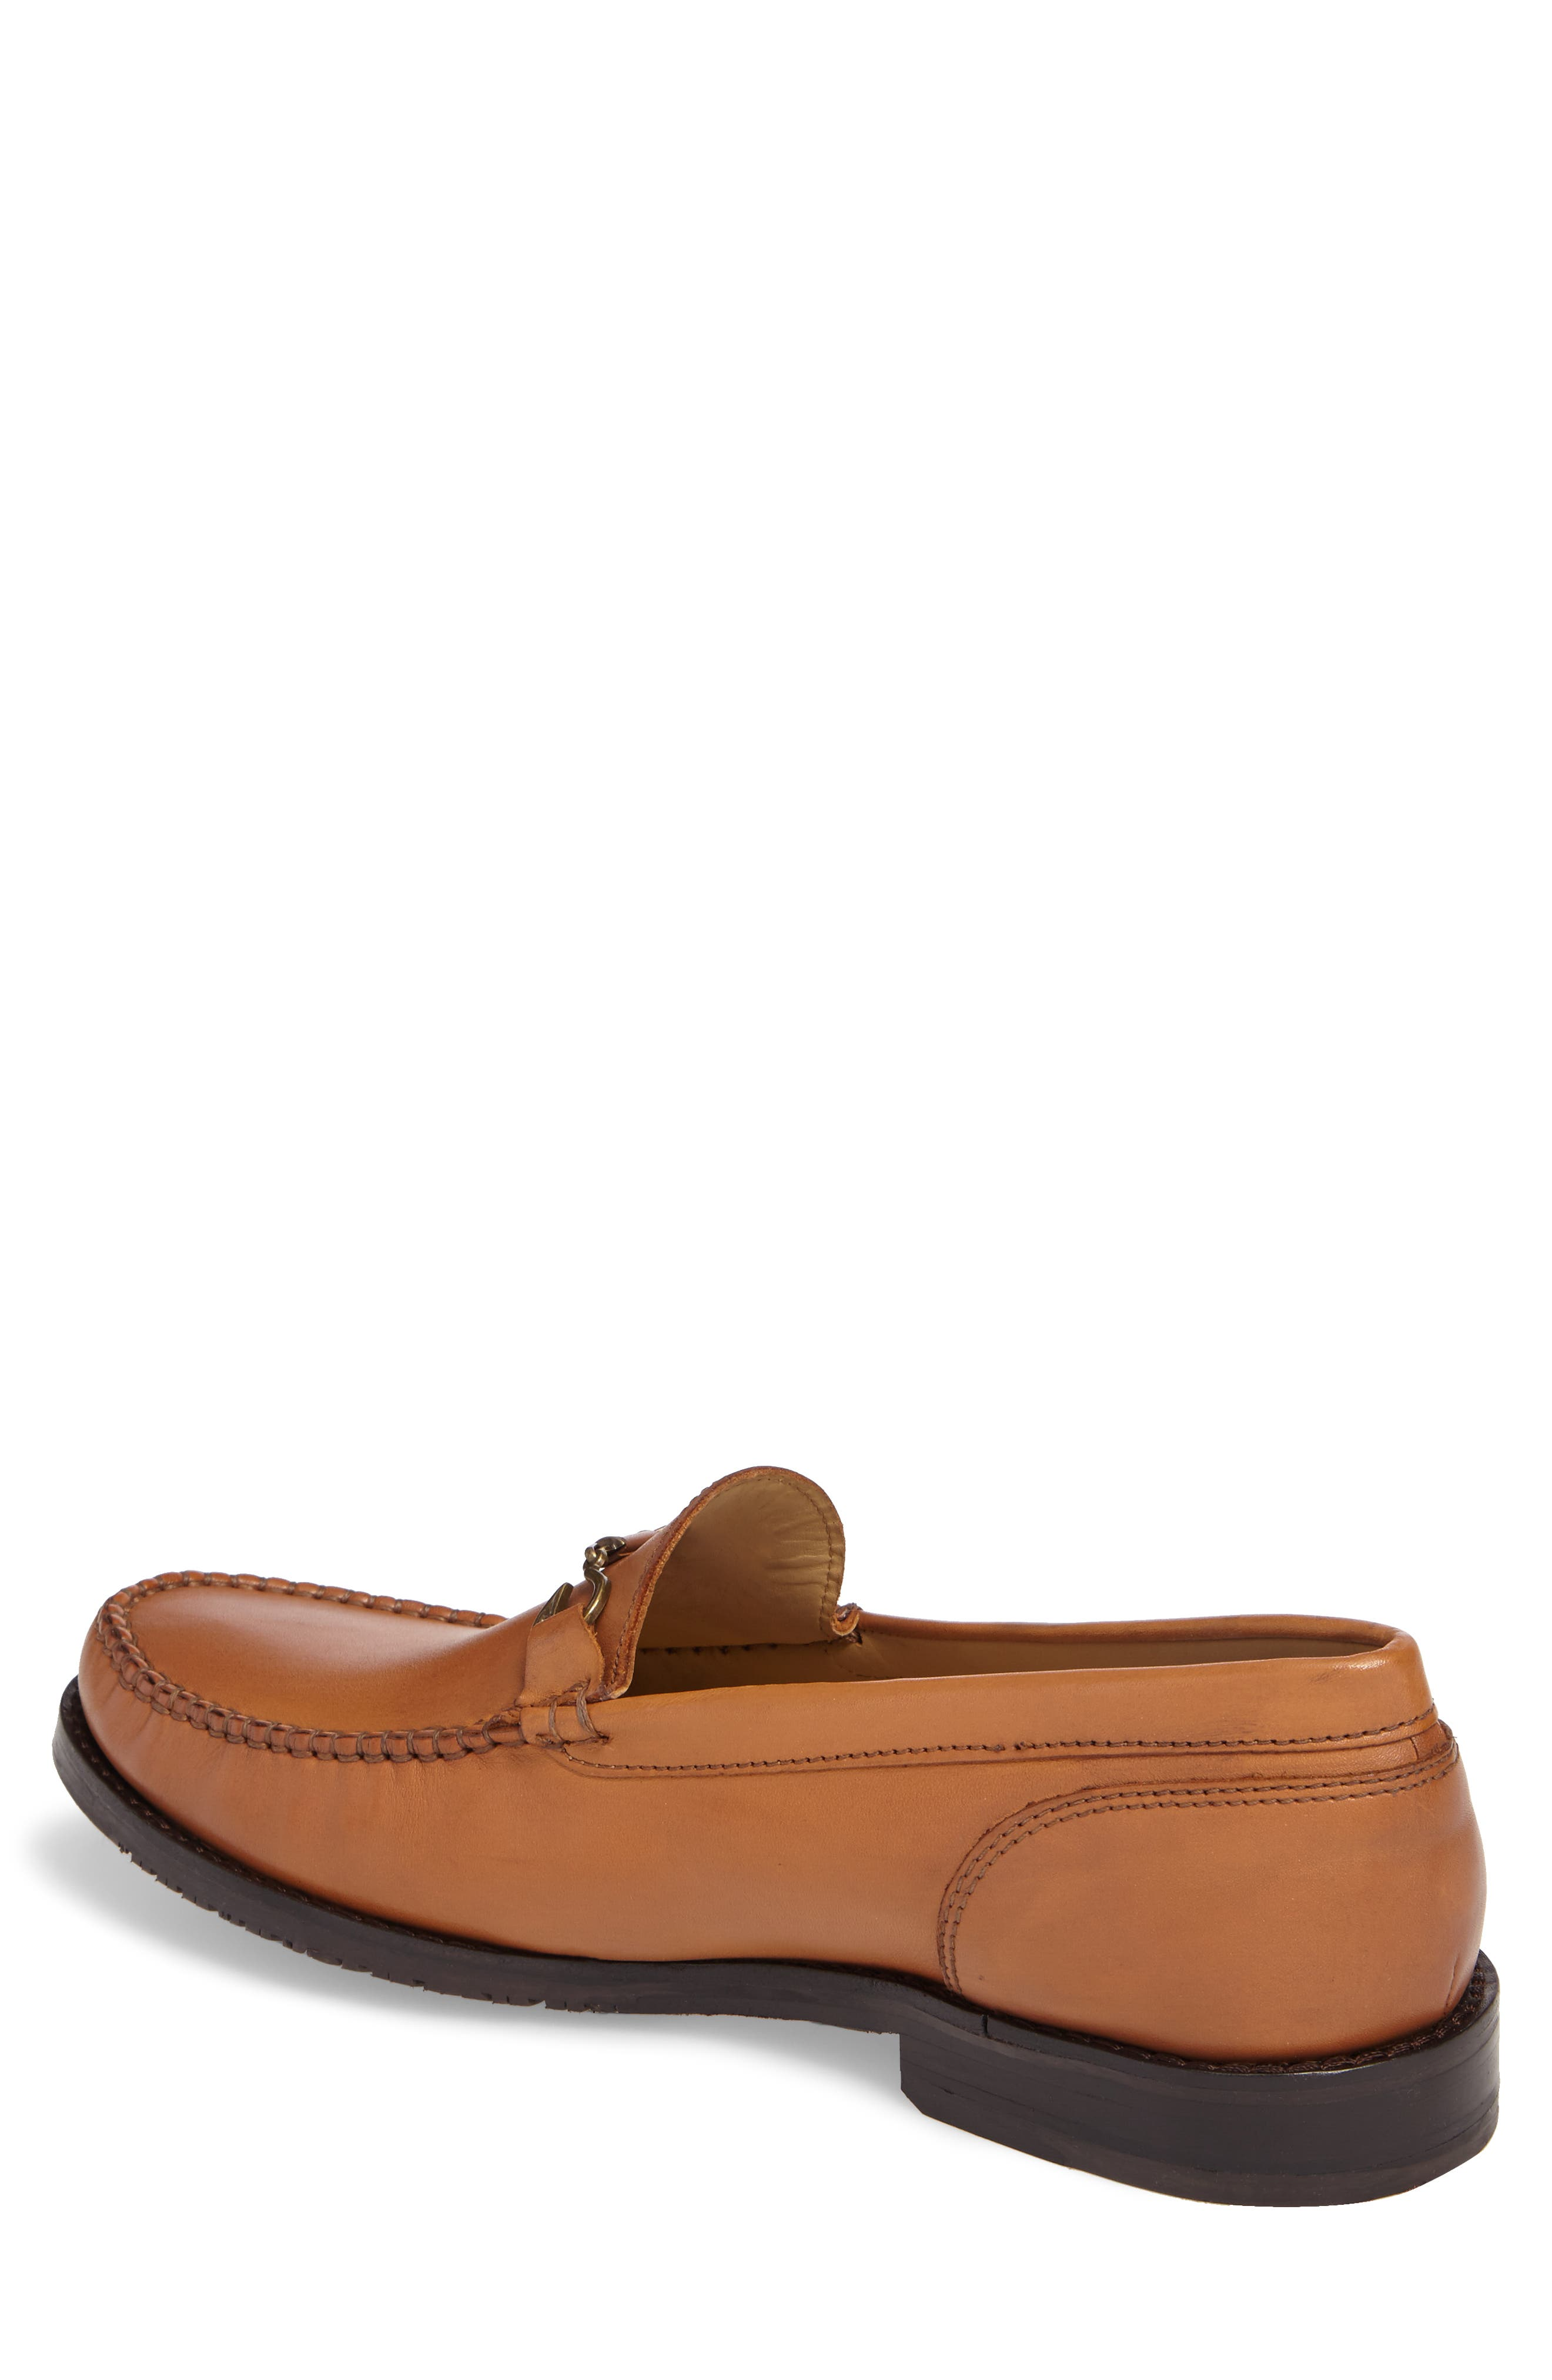 Maya Bay Bit Loafer,                             Alternate thumbnail 2, color,                             TAN LEATHER